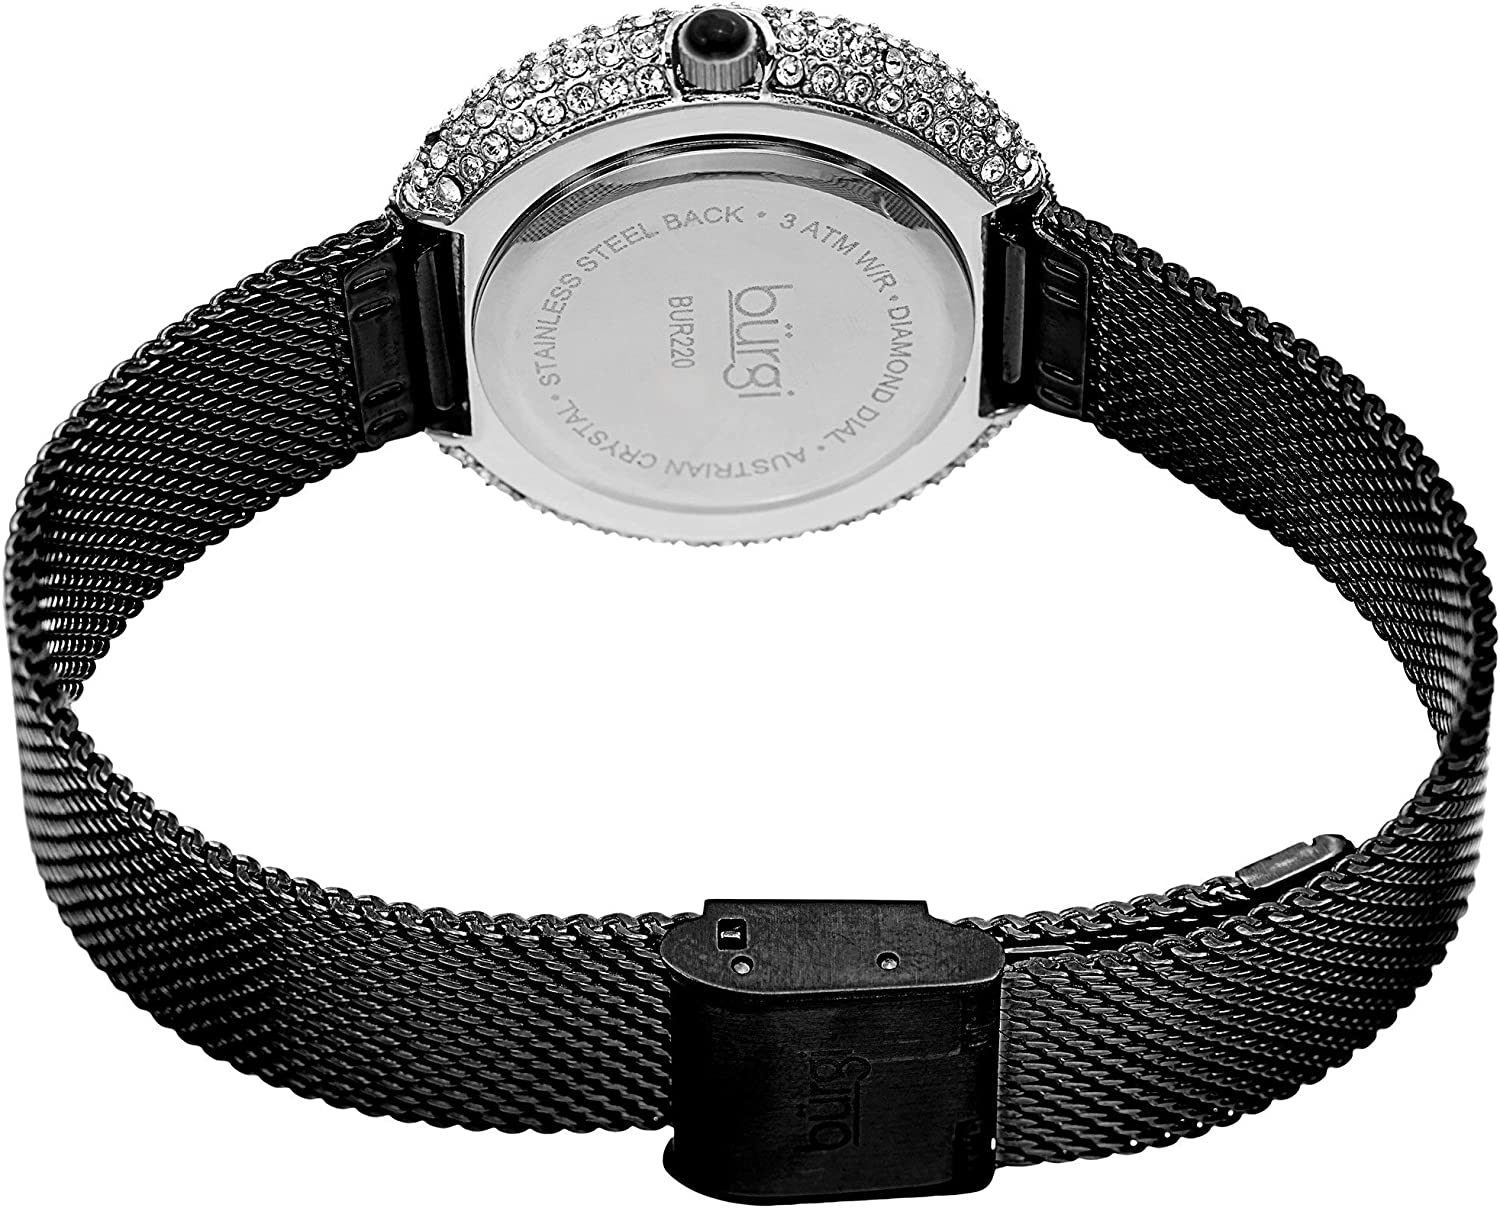 Burgi Swarovski Crystal Women's Watch - A Diamond Hour Marker on Accented Stainless Steel Mesh Bracelet Wristwatch - Perfect for Mother's Day - BUR220 Jet Black